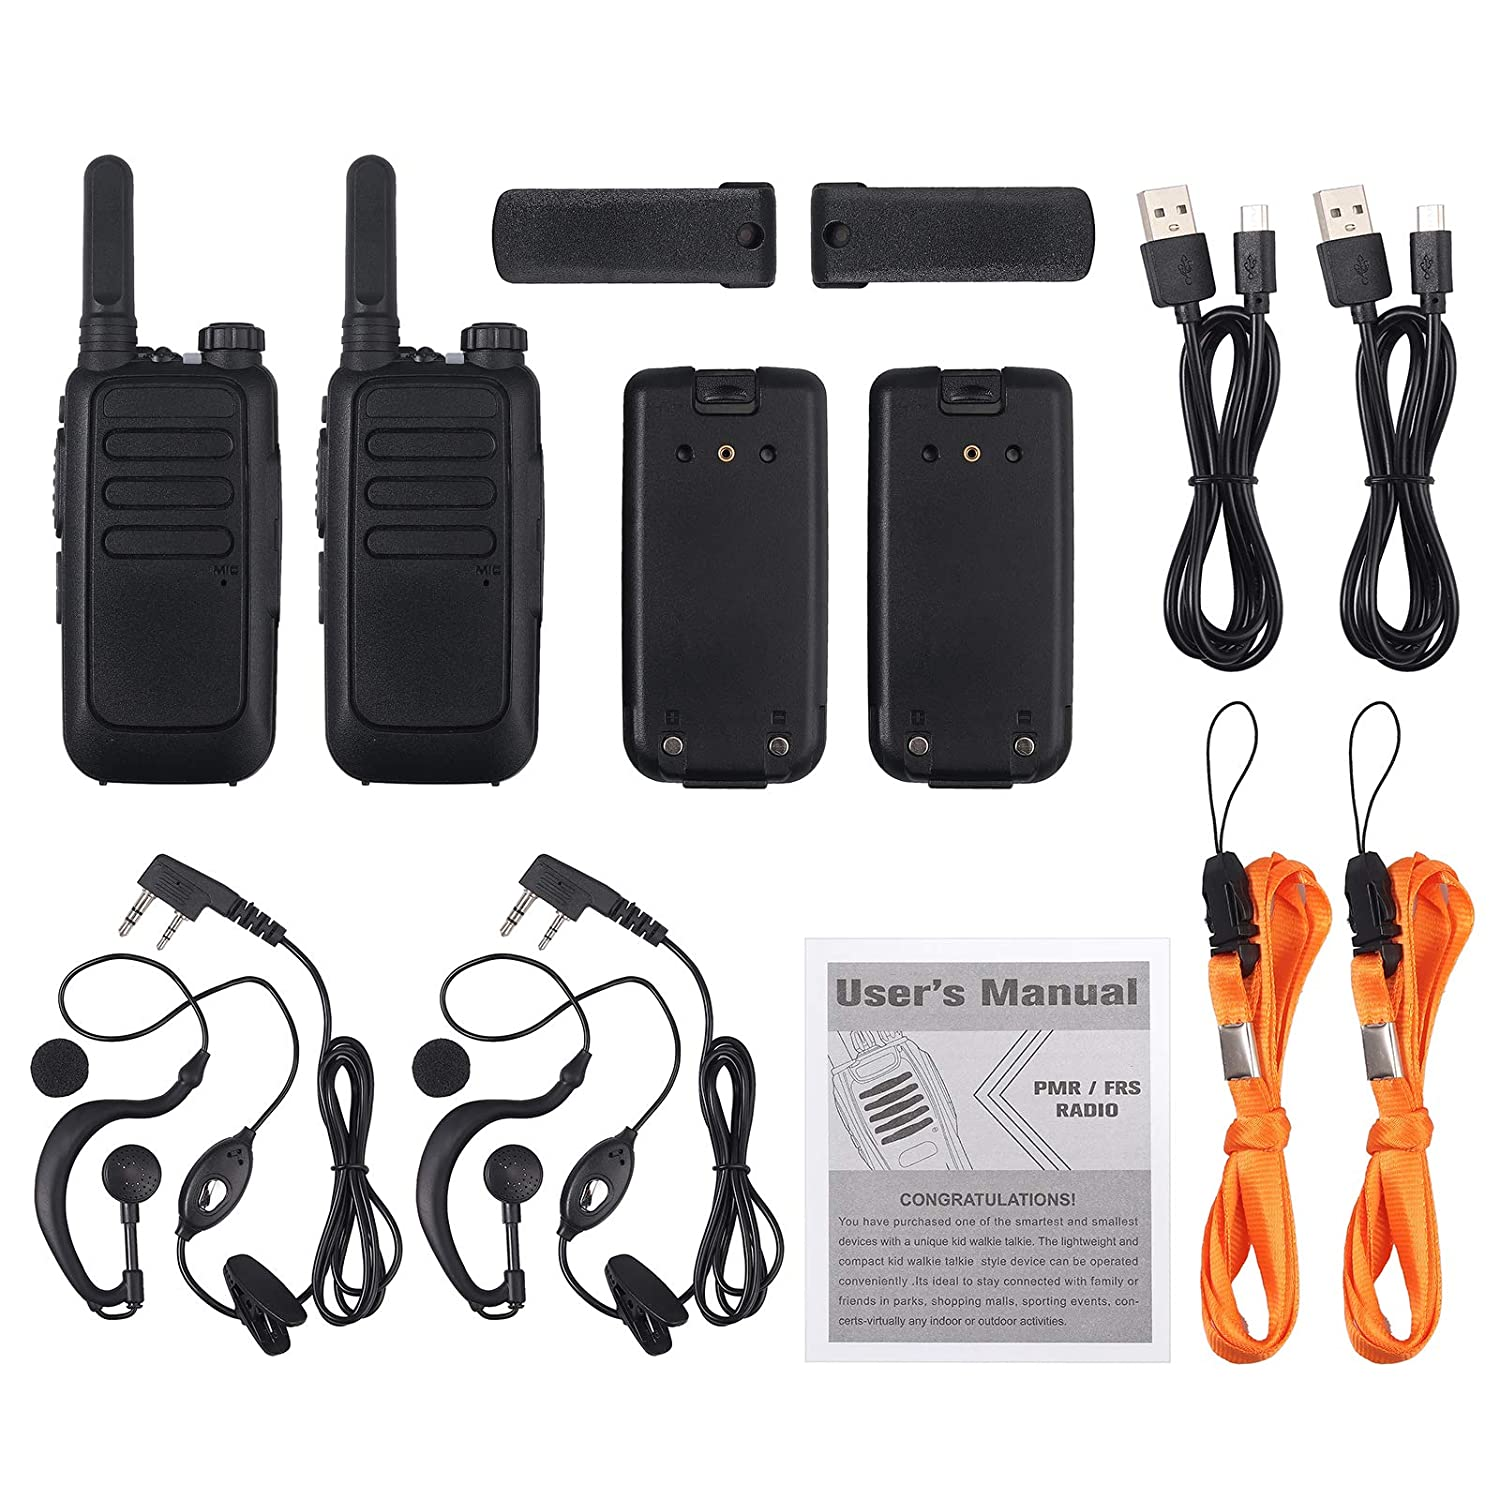 eSynic Rechargeable Walkie Talkie 2 Pack Long Range Two-Way Radios with Earpieces 16 CH FRS462MHz USB Cable Charging Walky Talky VOX Li-ion Battery and USB Charge Cable Included